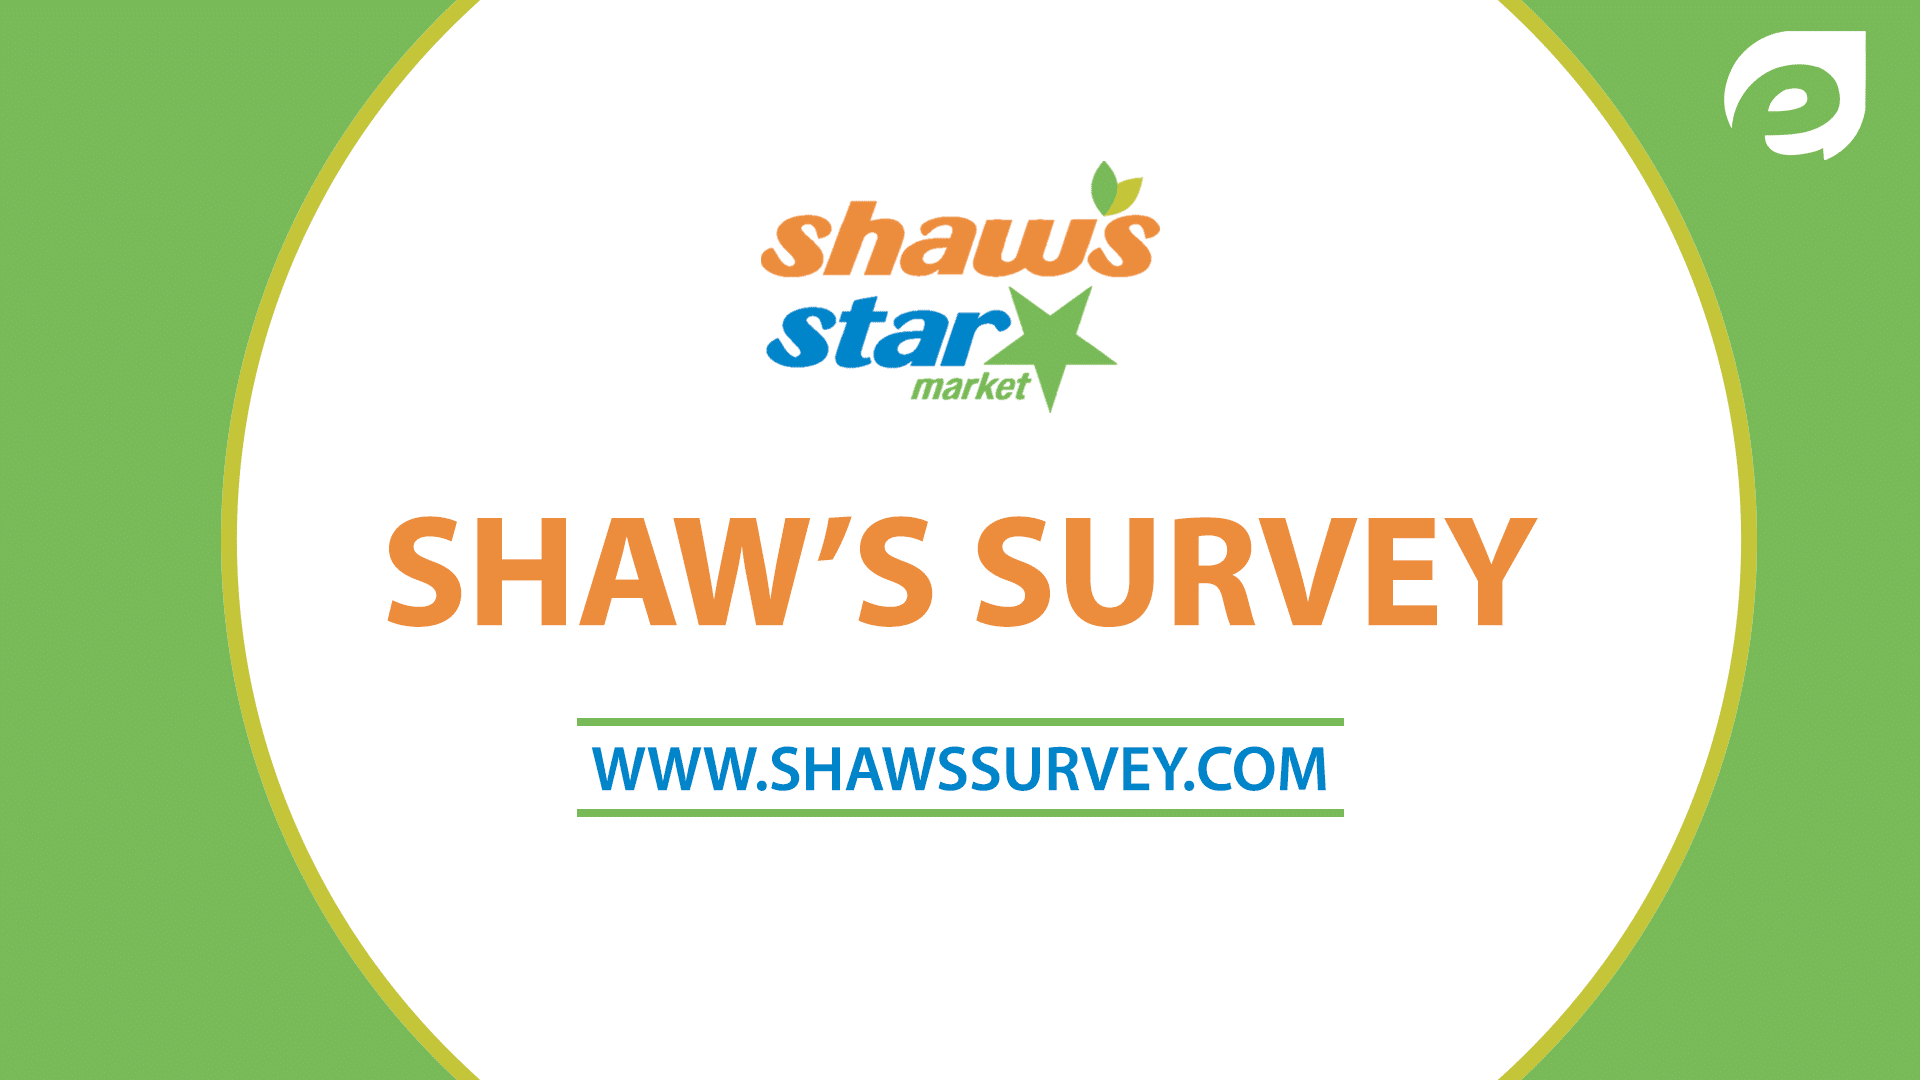 shaw's survey